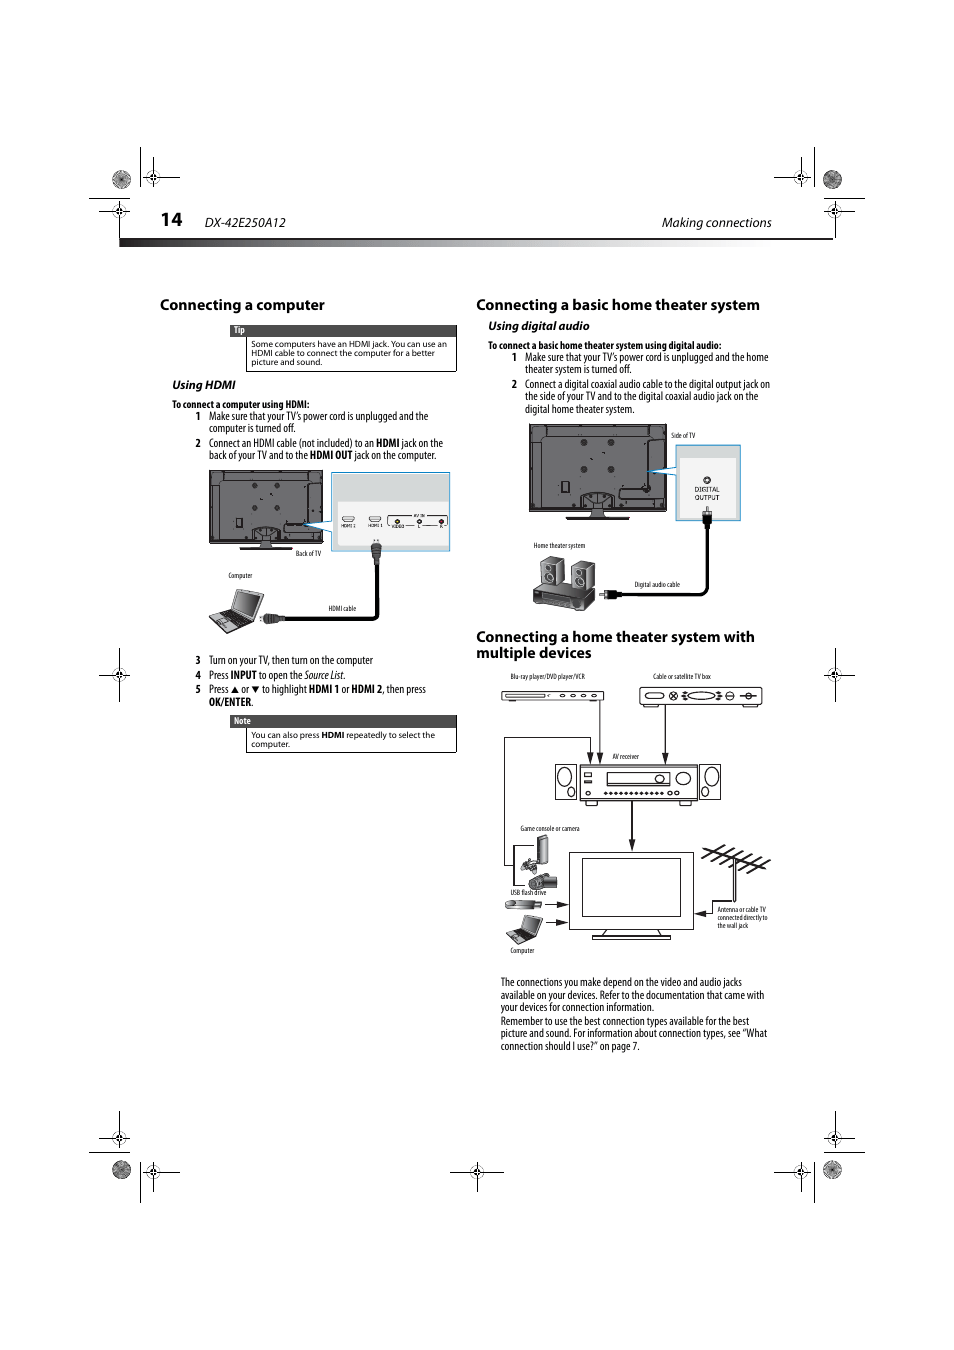 hdmi setup diagram 2007 club car precedent battery wiring pdf 7265 home theater user manuals 2019 ebook connecting a computer using basic system digital